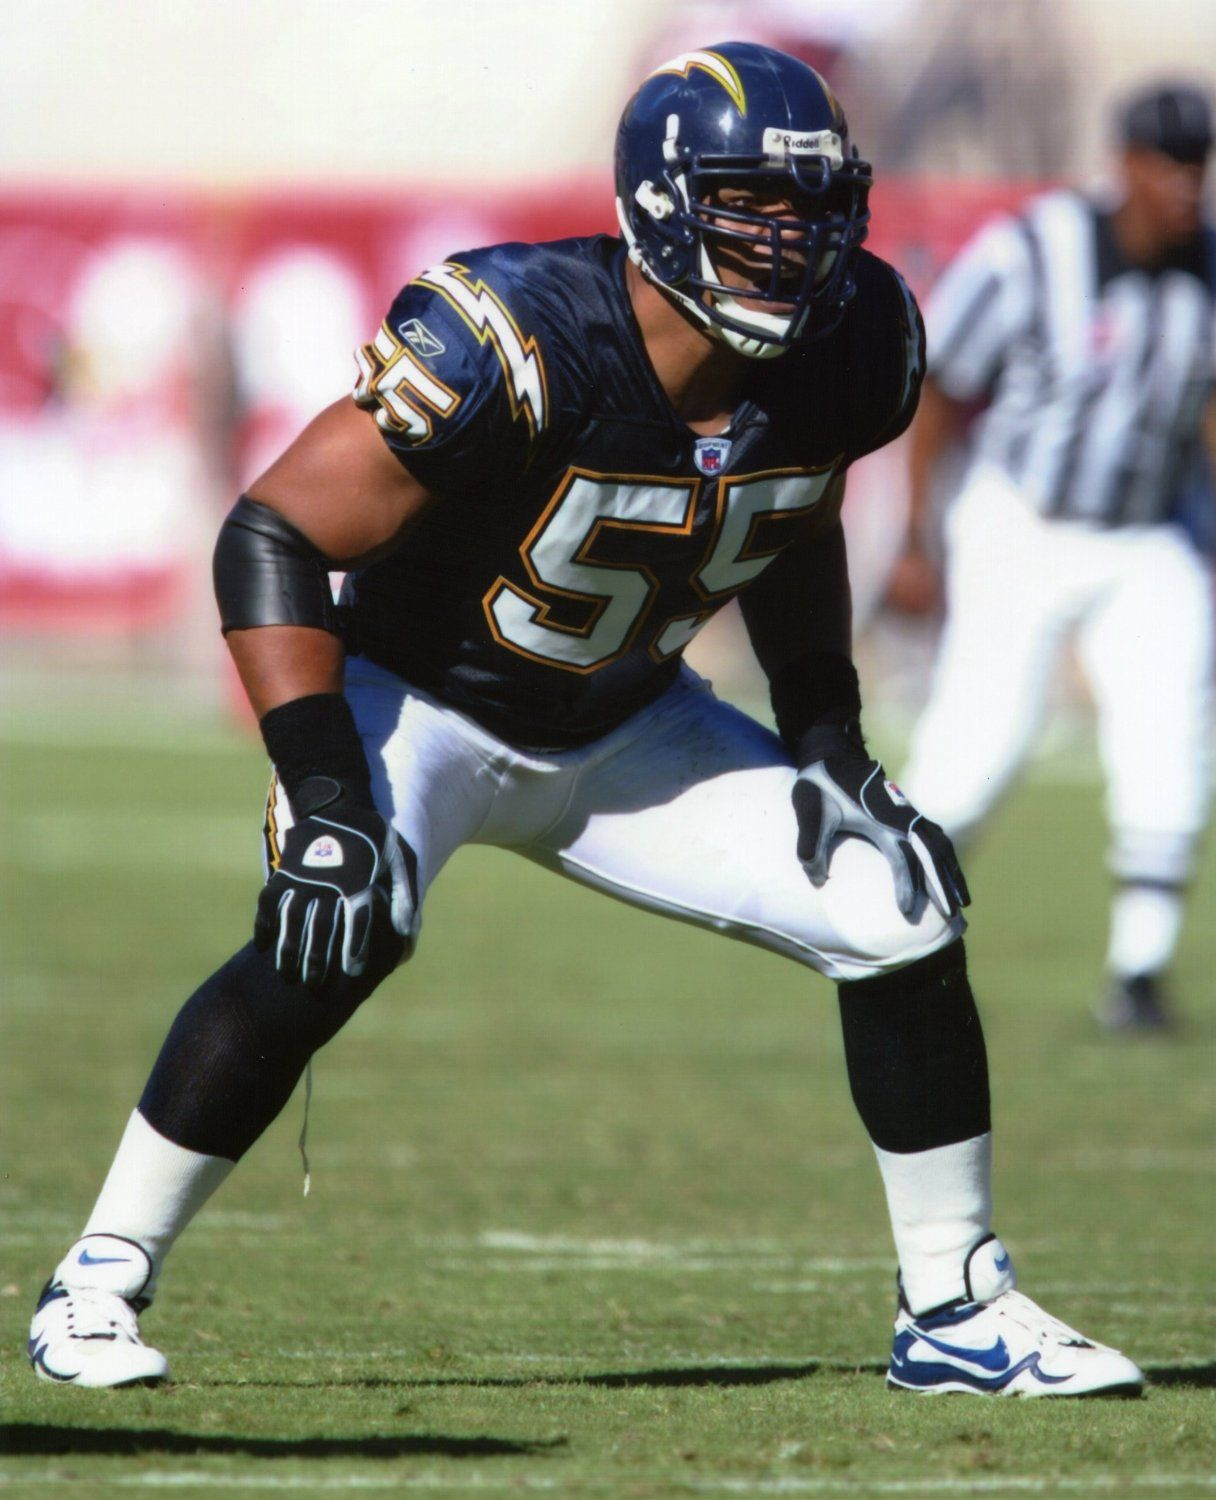 San Diego Chargers Chargers: Junior Seau - San Diego Chargers